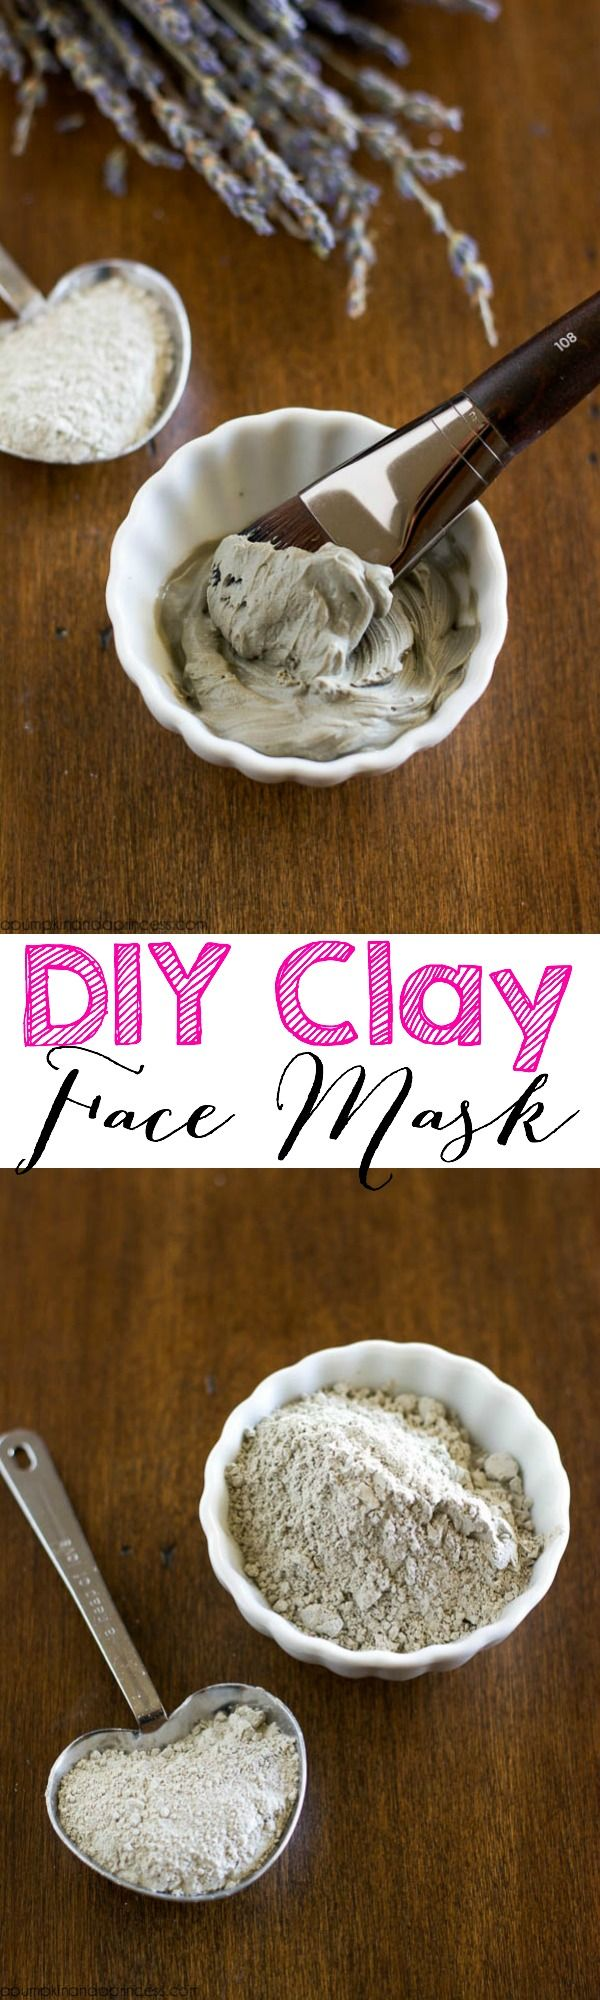 DIY Clay Face Mask - deep cleanse skin with this homemade face mask that only requires 2 ingredients!